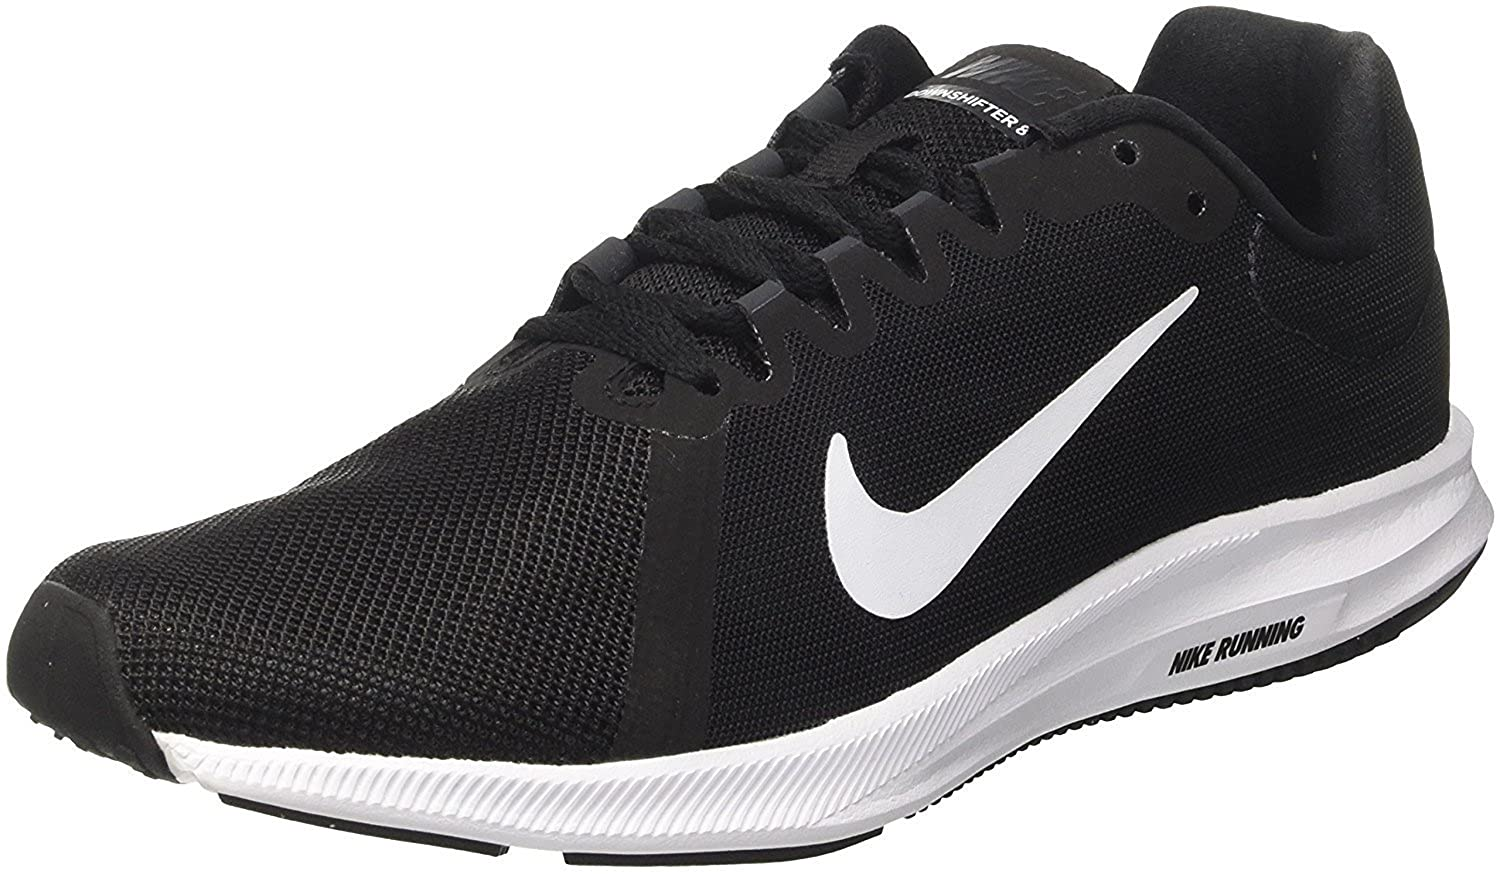 uk availability 7d86a 68756 Nike Downshifter 8 Sports Running Shoe for Men  Buy Online at Low Prices in  India - Amazon.in